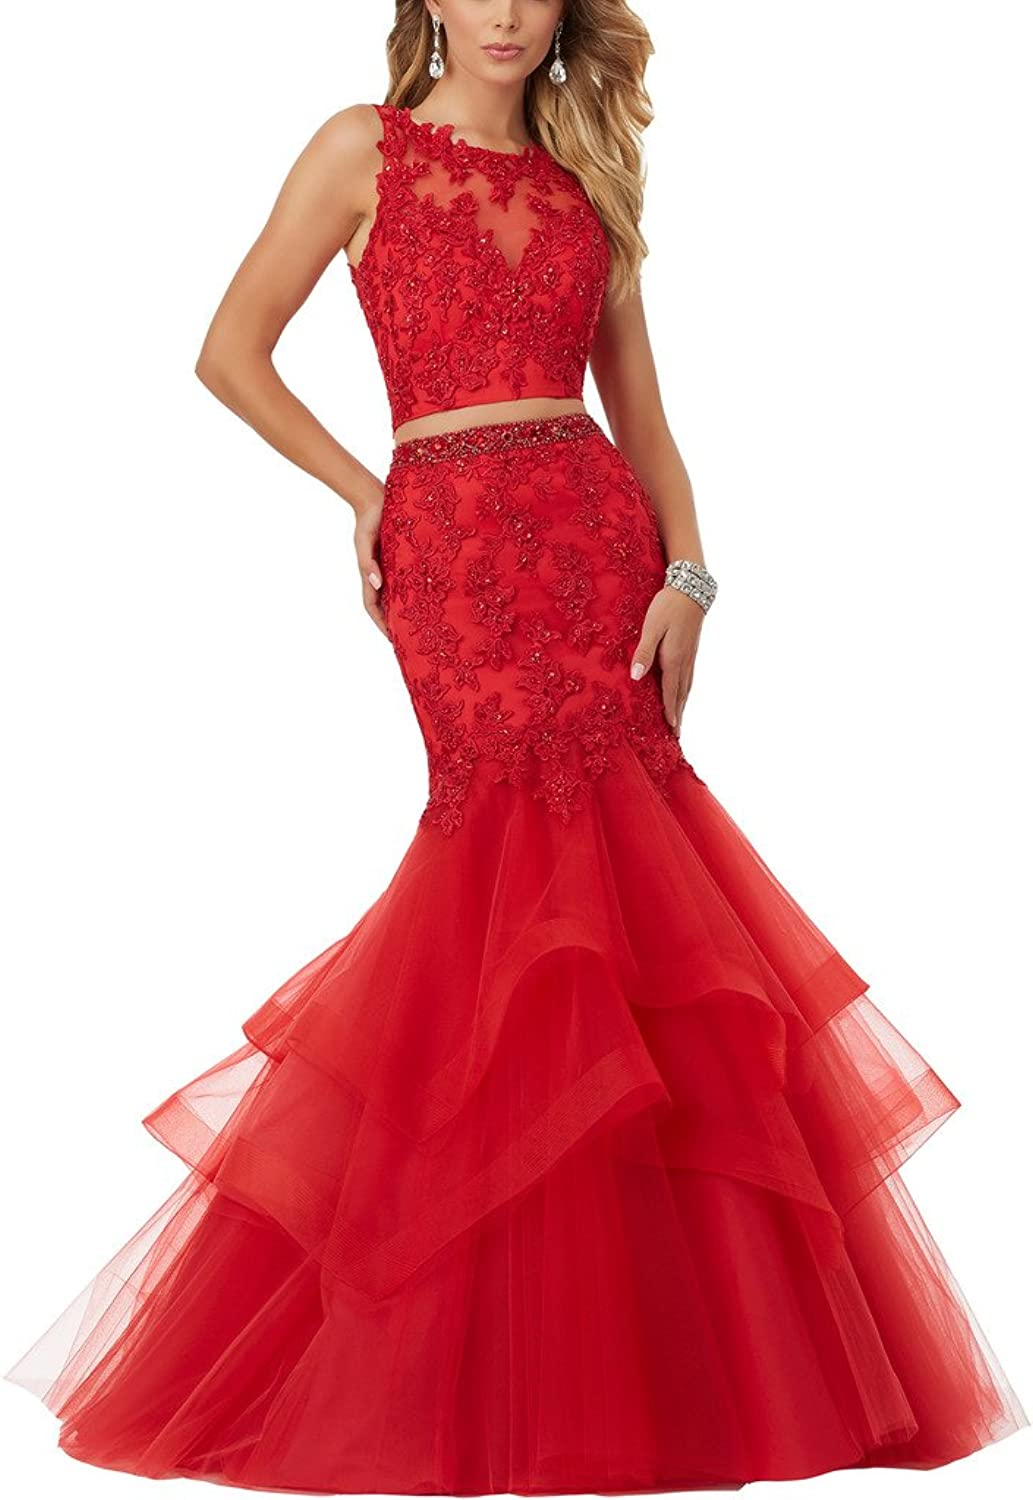 Topquality2016 Women's Mermaid Lace Long Two Piece Prom Ball Dress Evening Gown